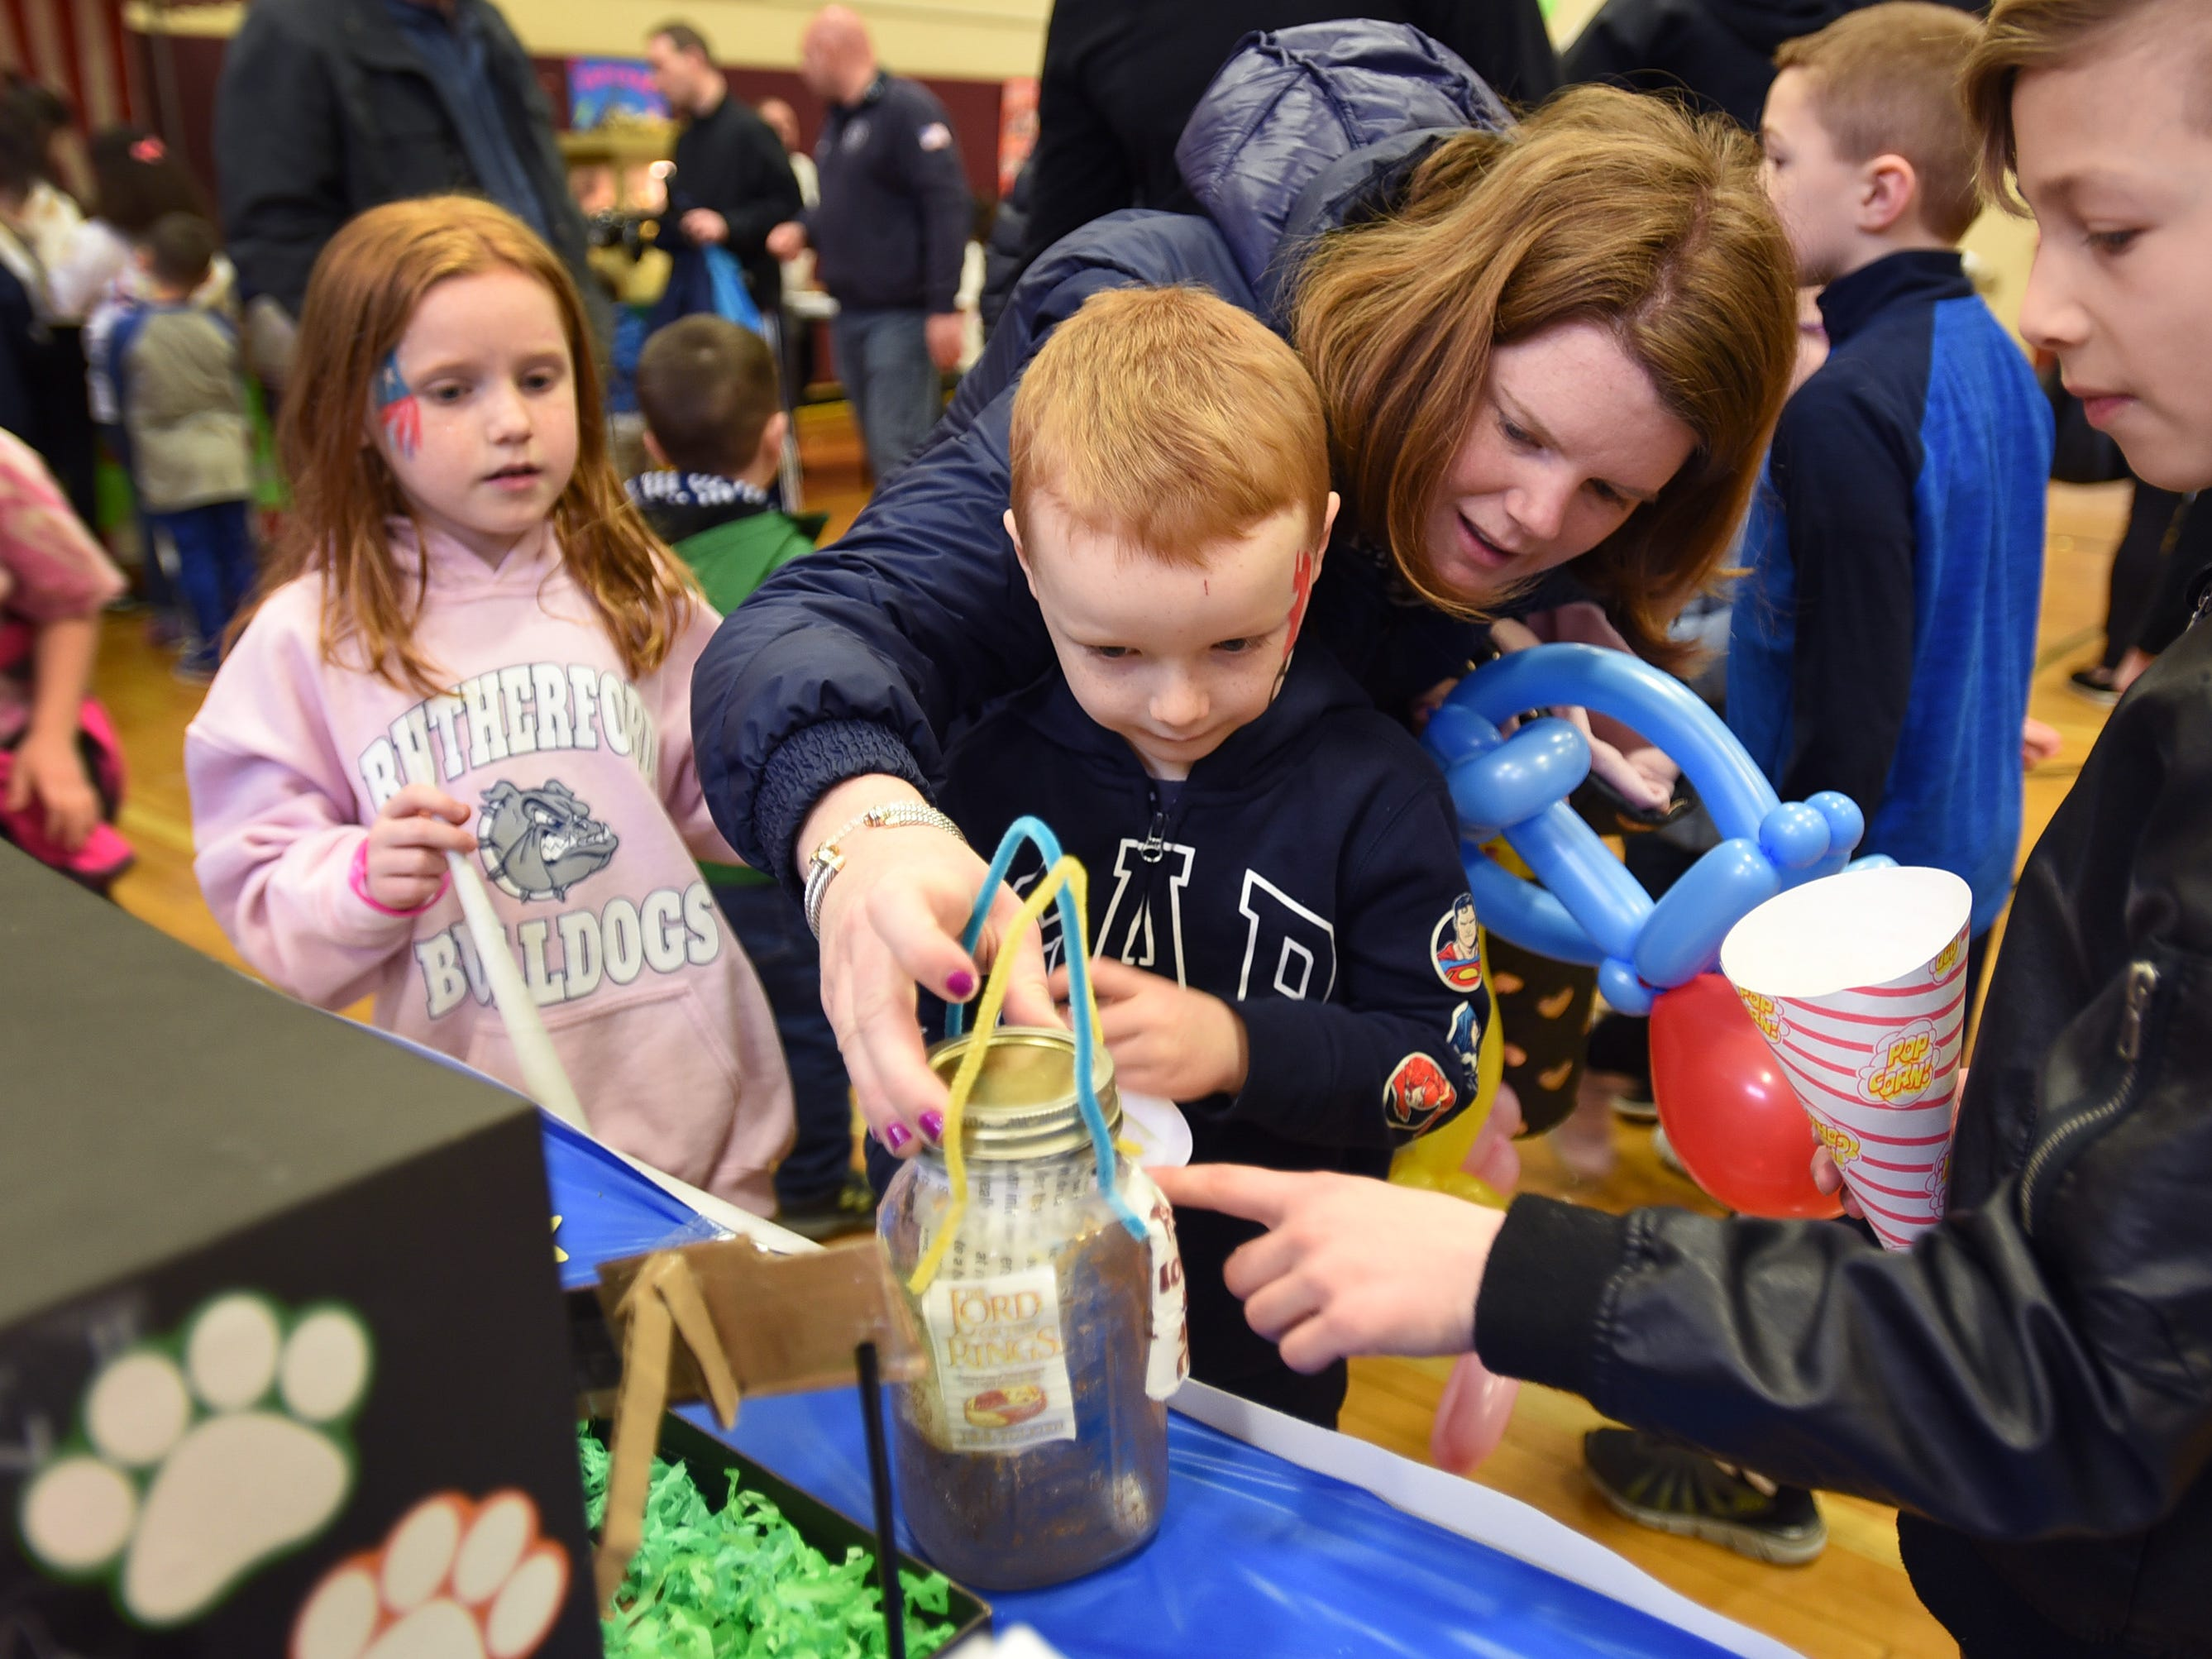 Marykate Parkinson of Rutherford, helps her son James (age 5) to look at a Dream Jar that is displayed during the 3rd annual March Madness Food & Fun Day to benefit the Rutherford Food Pantry hosted by the Rutherford Education Association at Washington School in Rutherford on 03/23/2019.